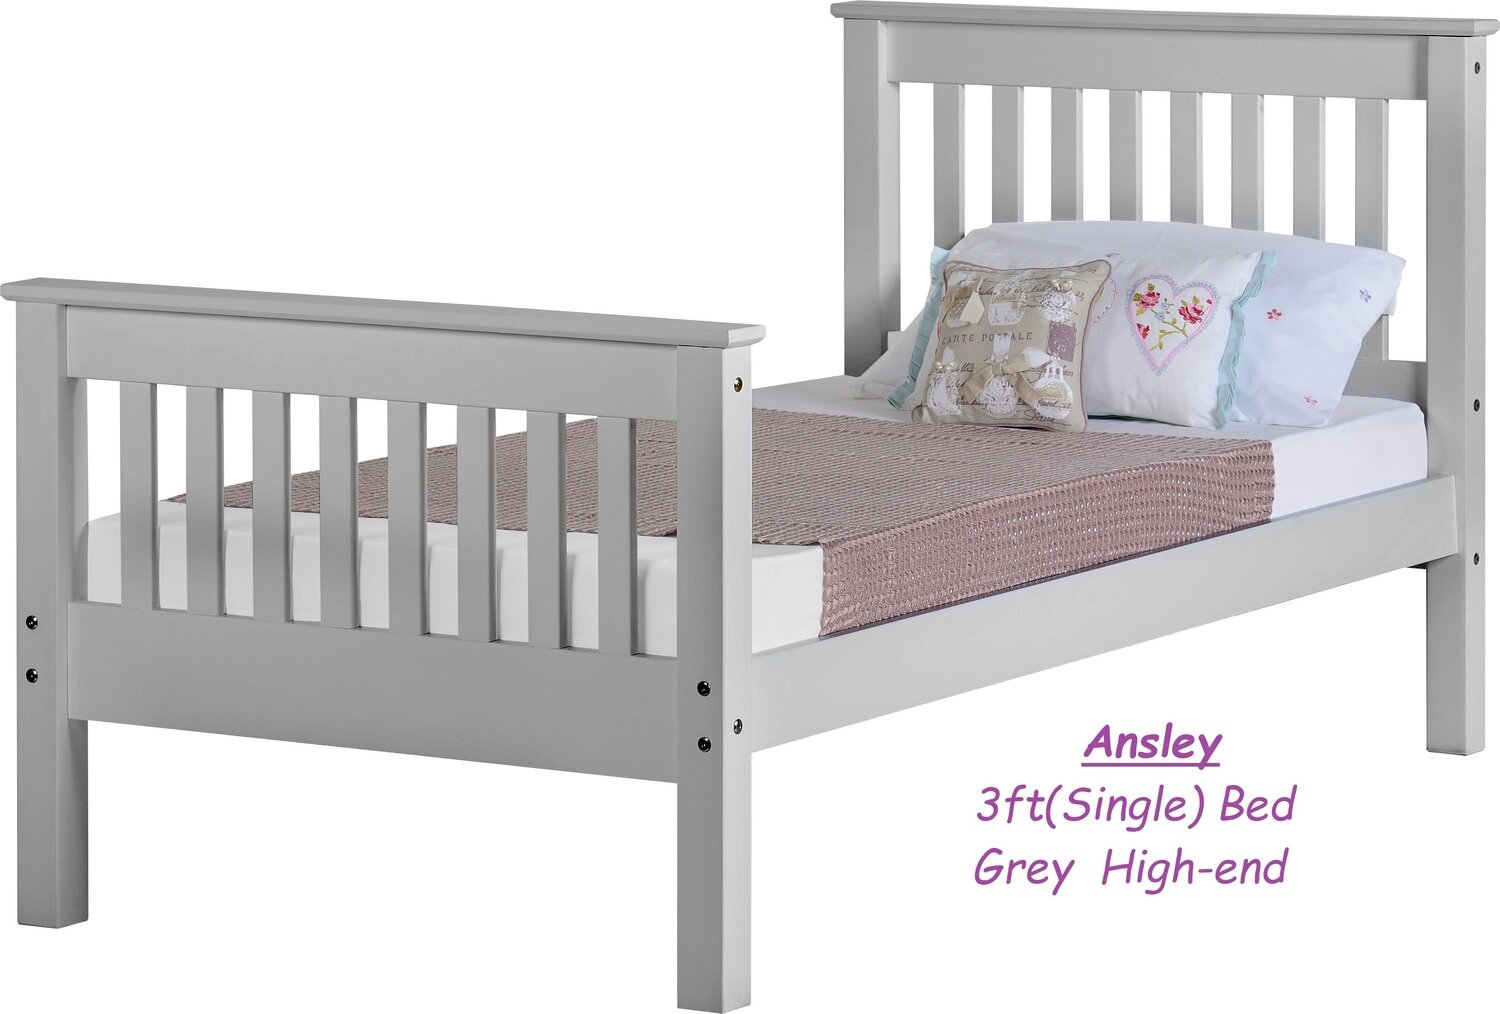 Ansley 3' Bed (Single) Grey High-end